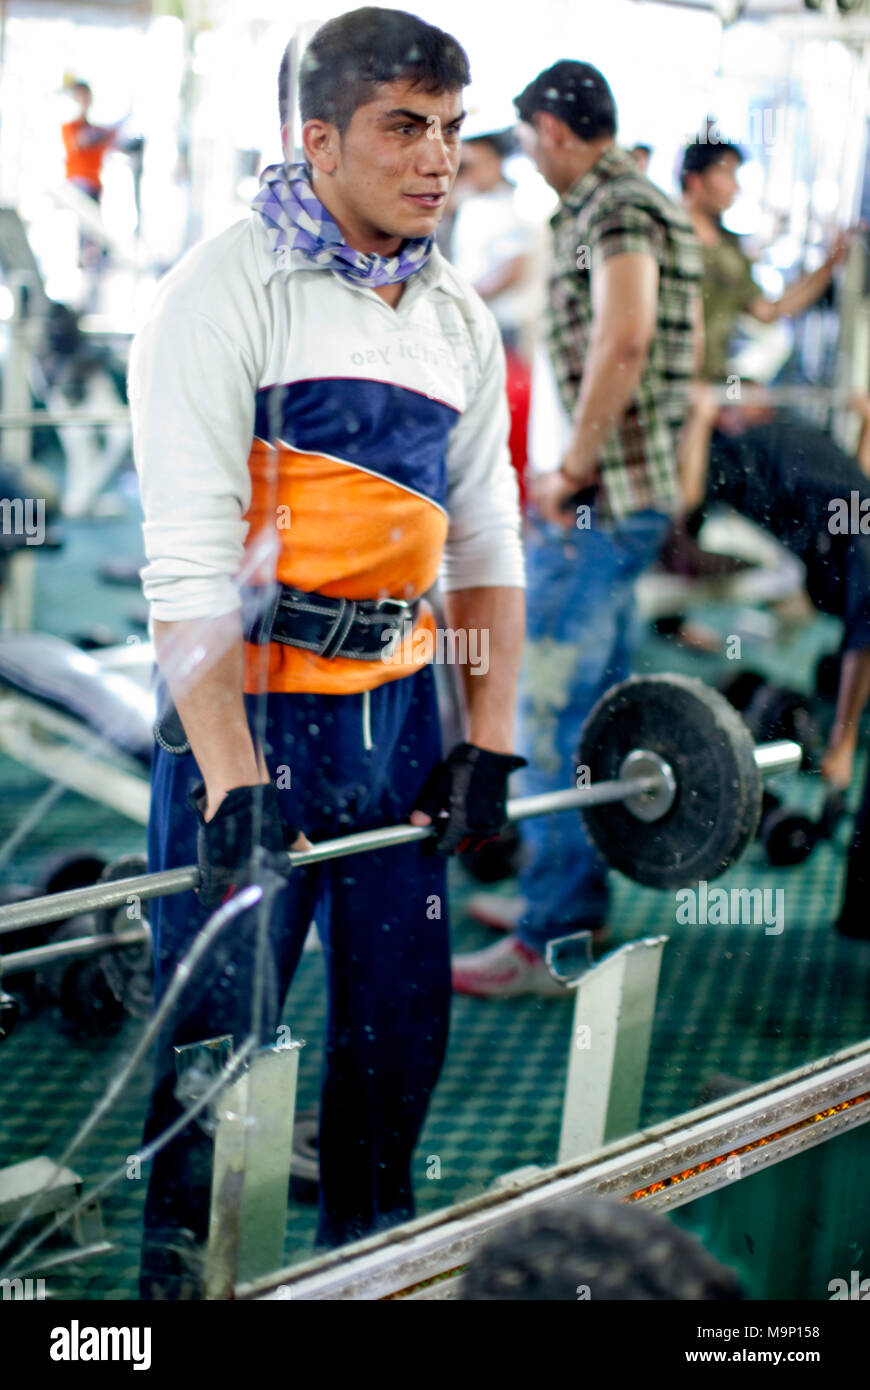 An Afghan man exercises at Gold's Gym in Kabul, Afghanistan, Friday, July 17, 2009. This is the first weight lifting facility to open after the fall of the Taliban. - Stock Image